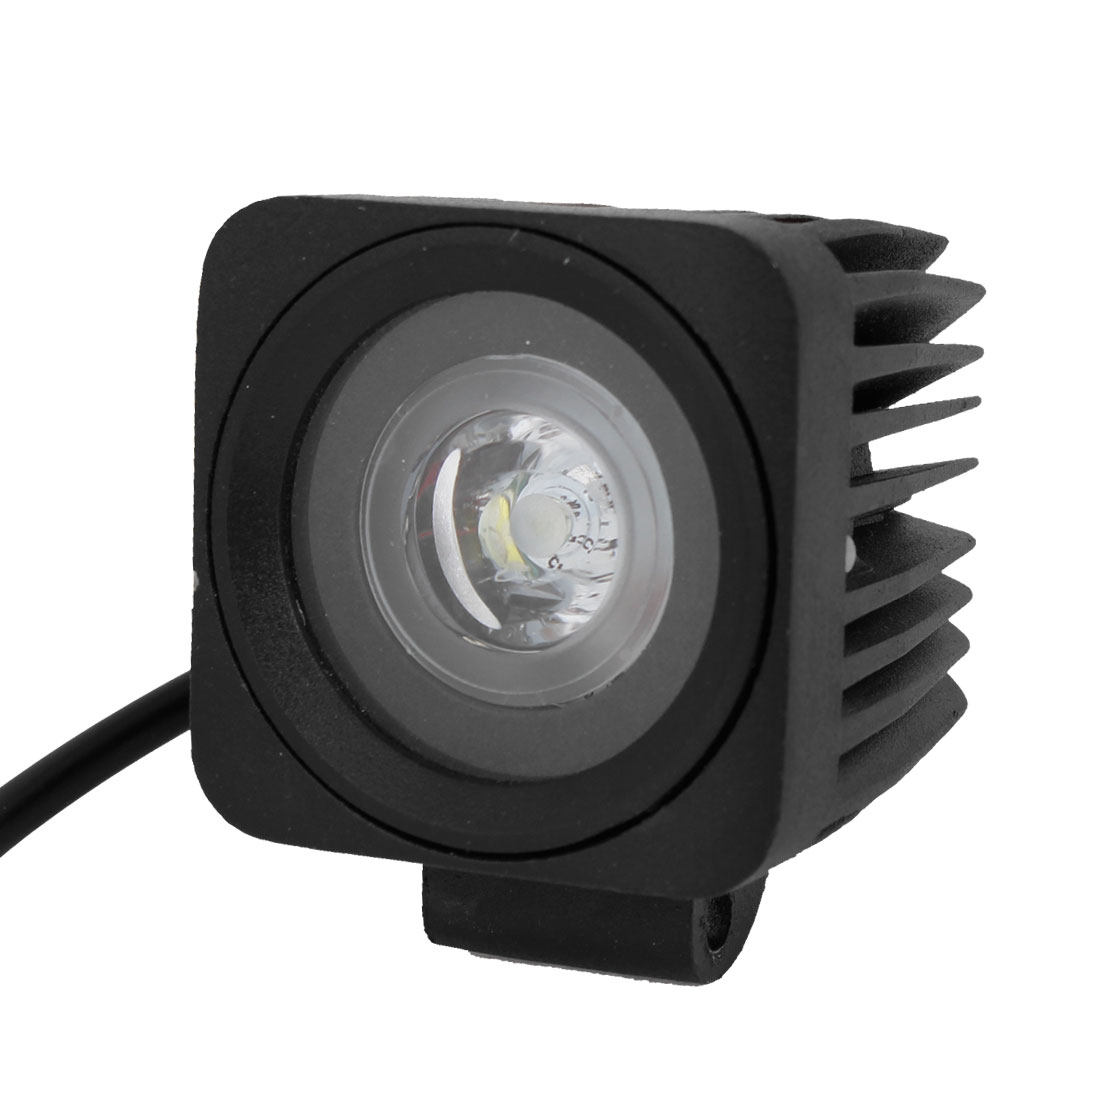 New White 10W LED Work Light Spot Beam Driving Lamp Offroad ATV SUV DC12V 24V